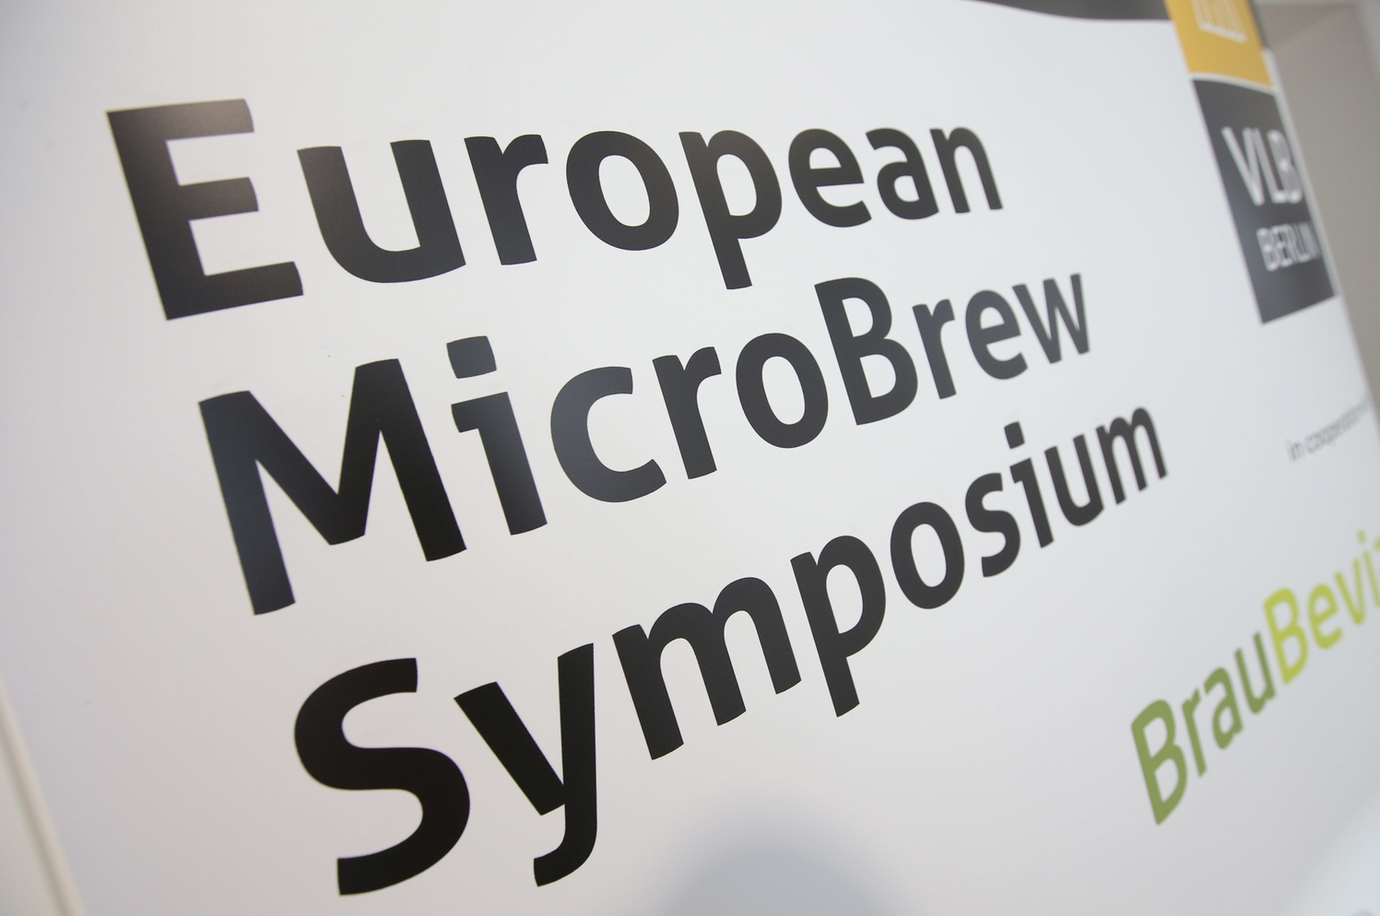 6th European MicroBrew Symposium